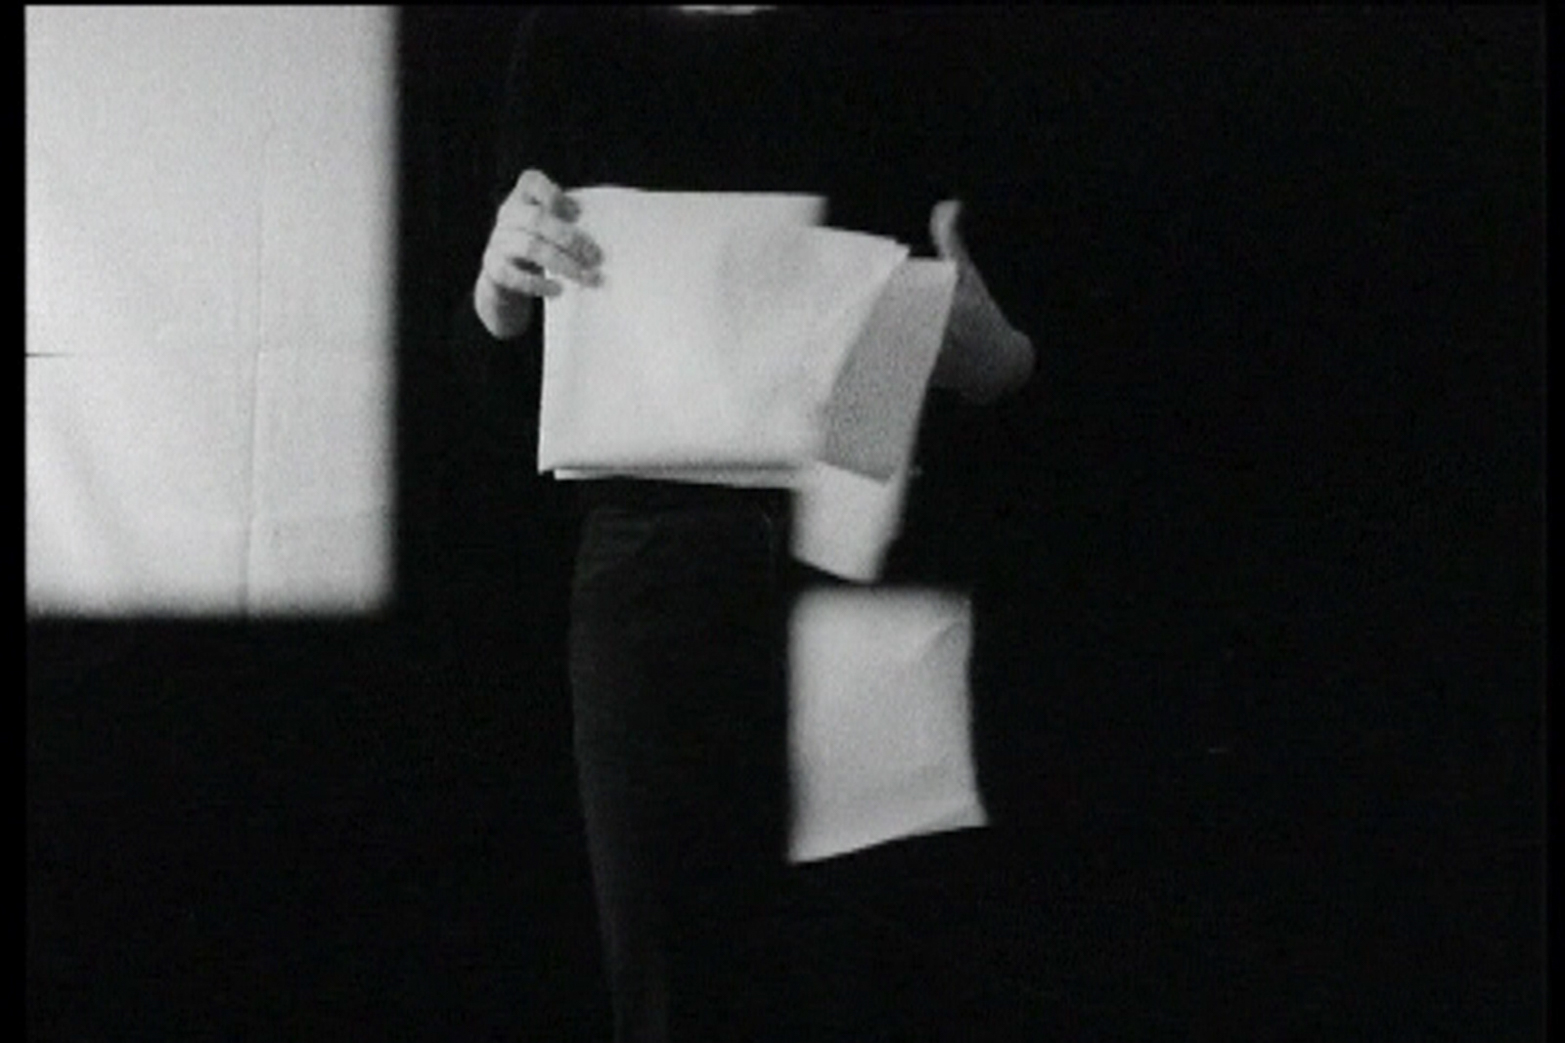 Dóra Maurer. Timing, 1973-80, film still. Courtesy of Tenderpixel.